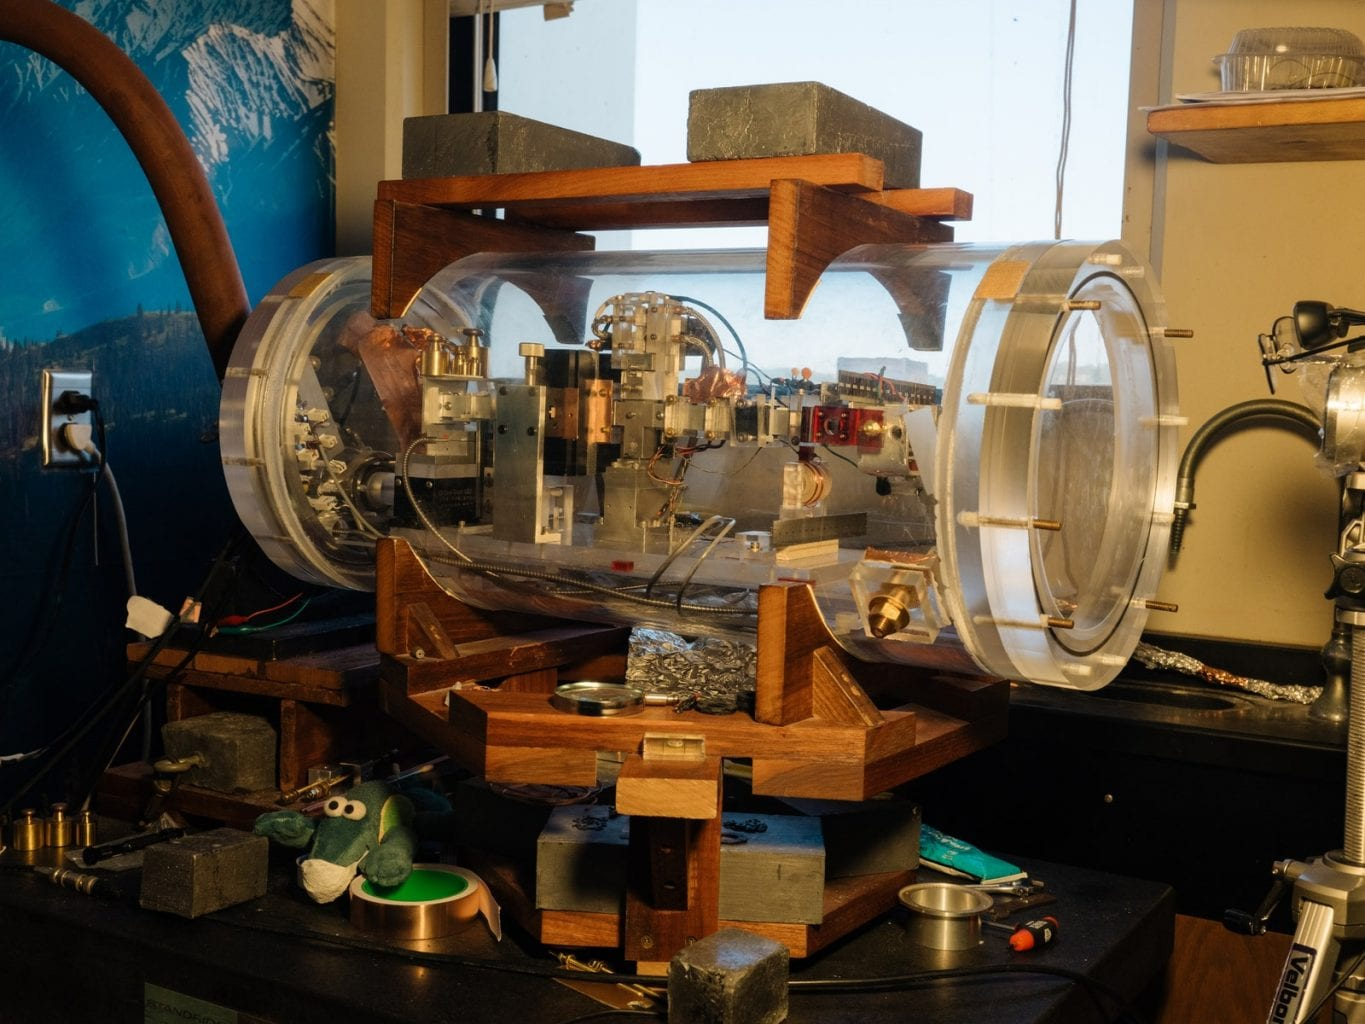 Professor Woodward's MEGA drive thruster test device put in a homemade vacuum chamber. Credit: Rozette Rago / Wired